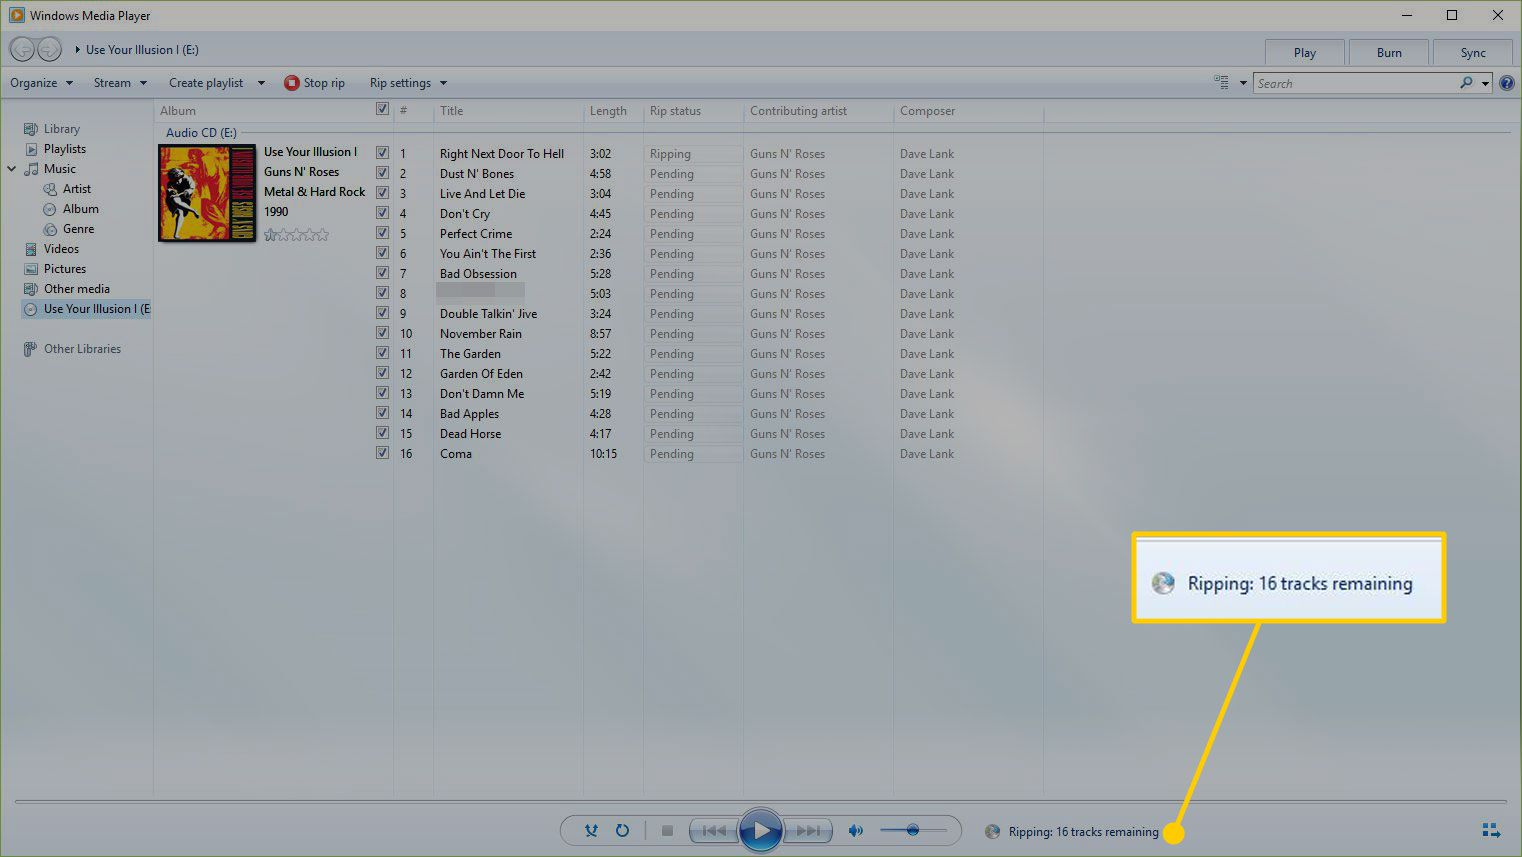 How To Rip Cds With Windows Media Player